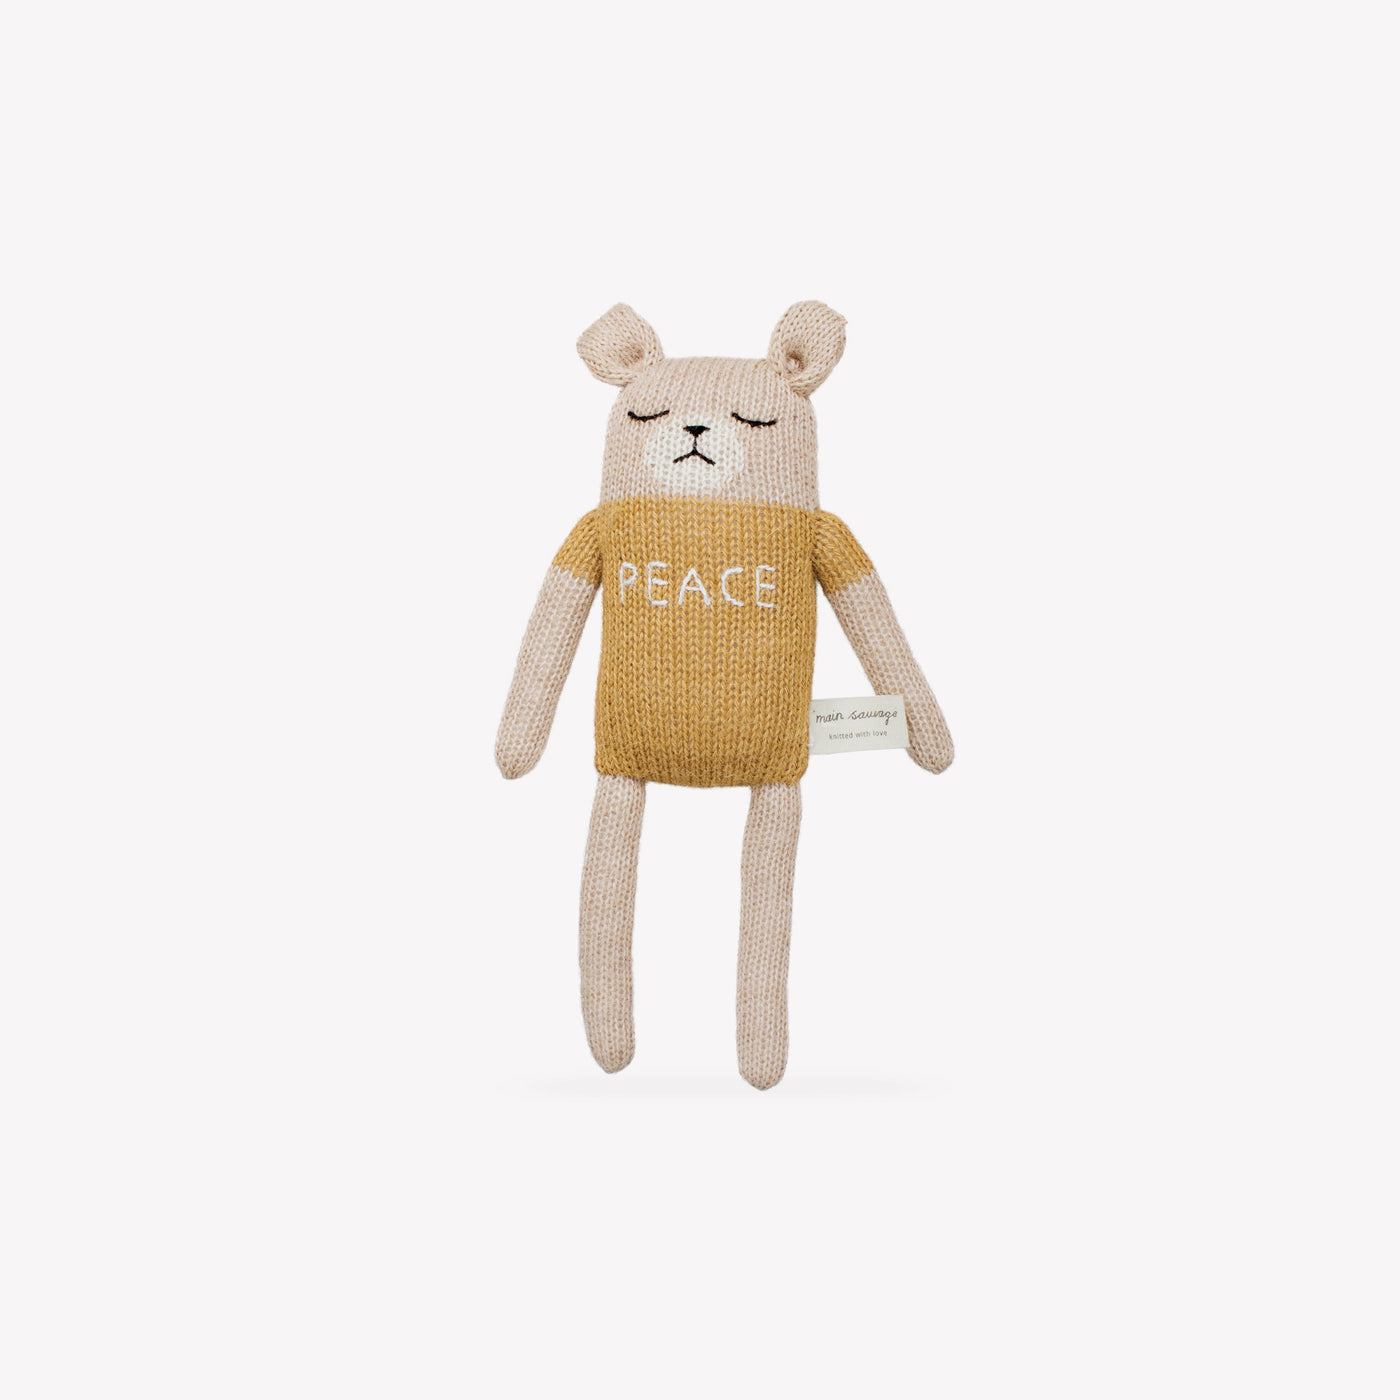 """Peace"" Teddy Knit Toy - Sapling Organic Baby Clothes"